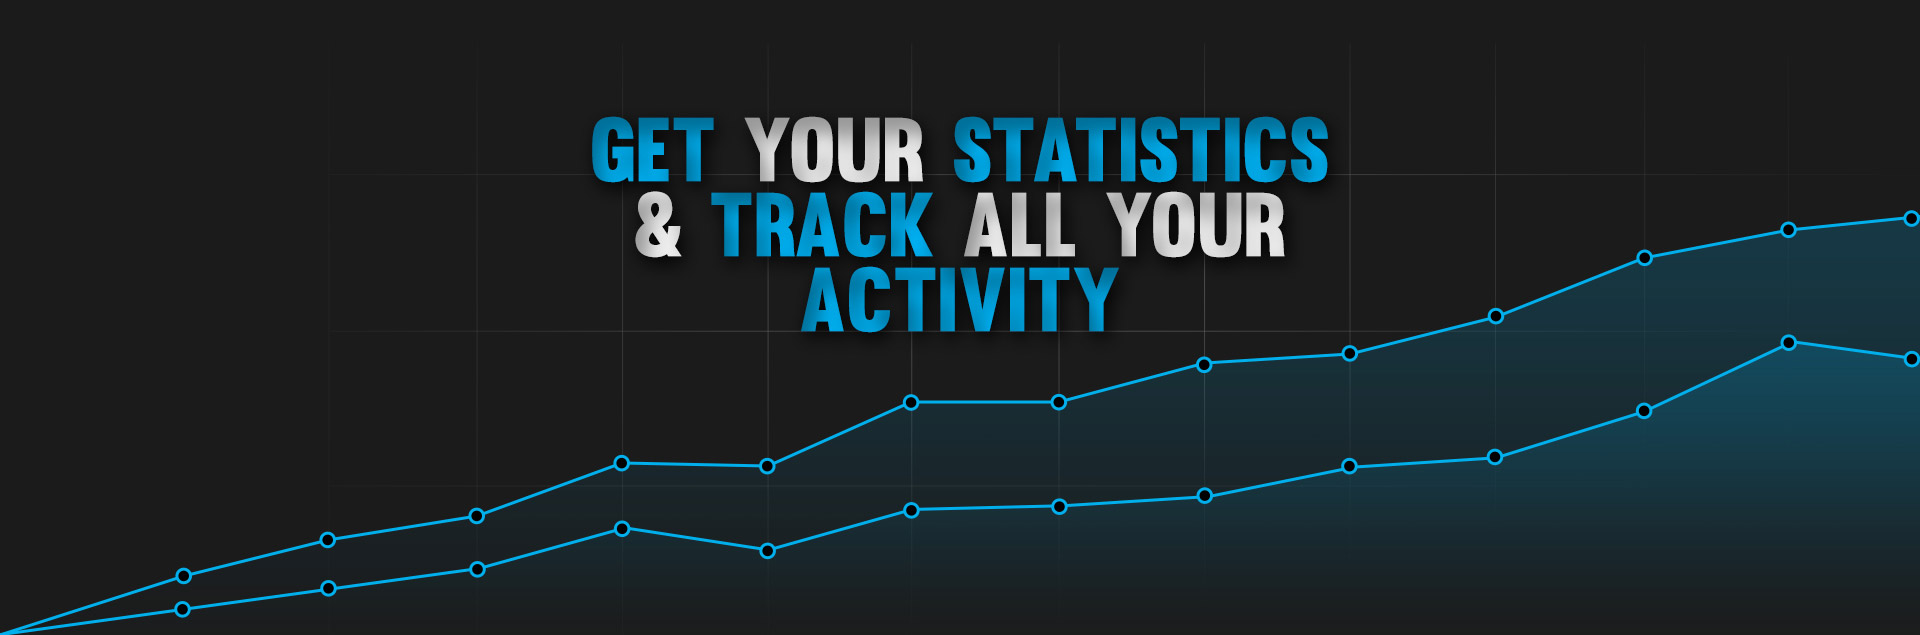 Get your statistics & track all your activity